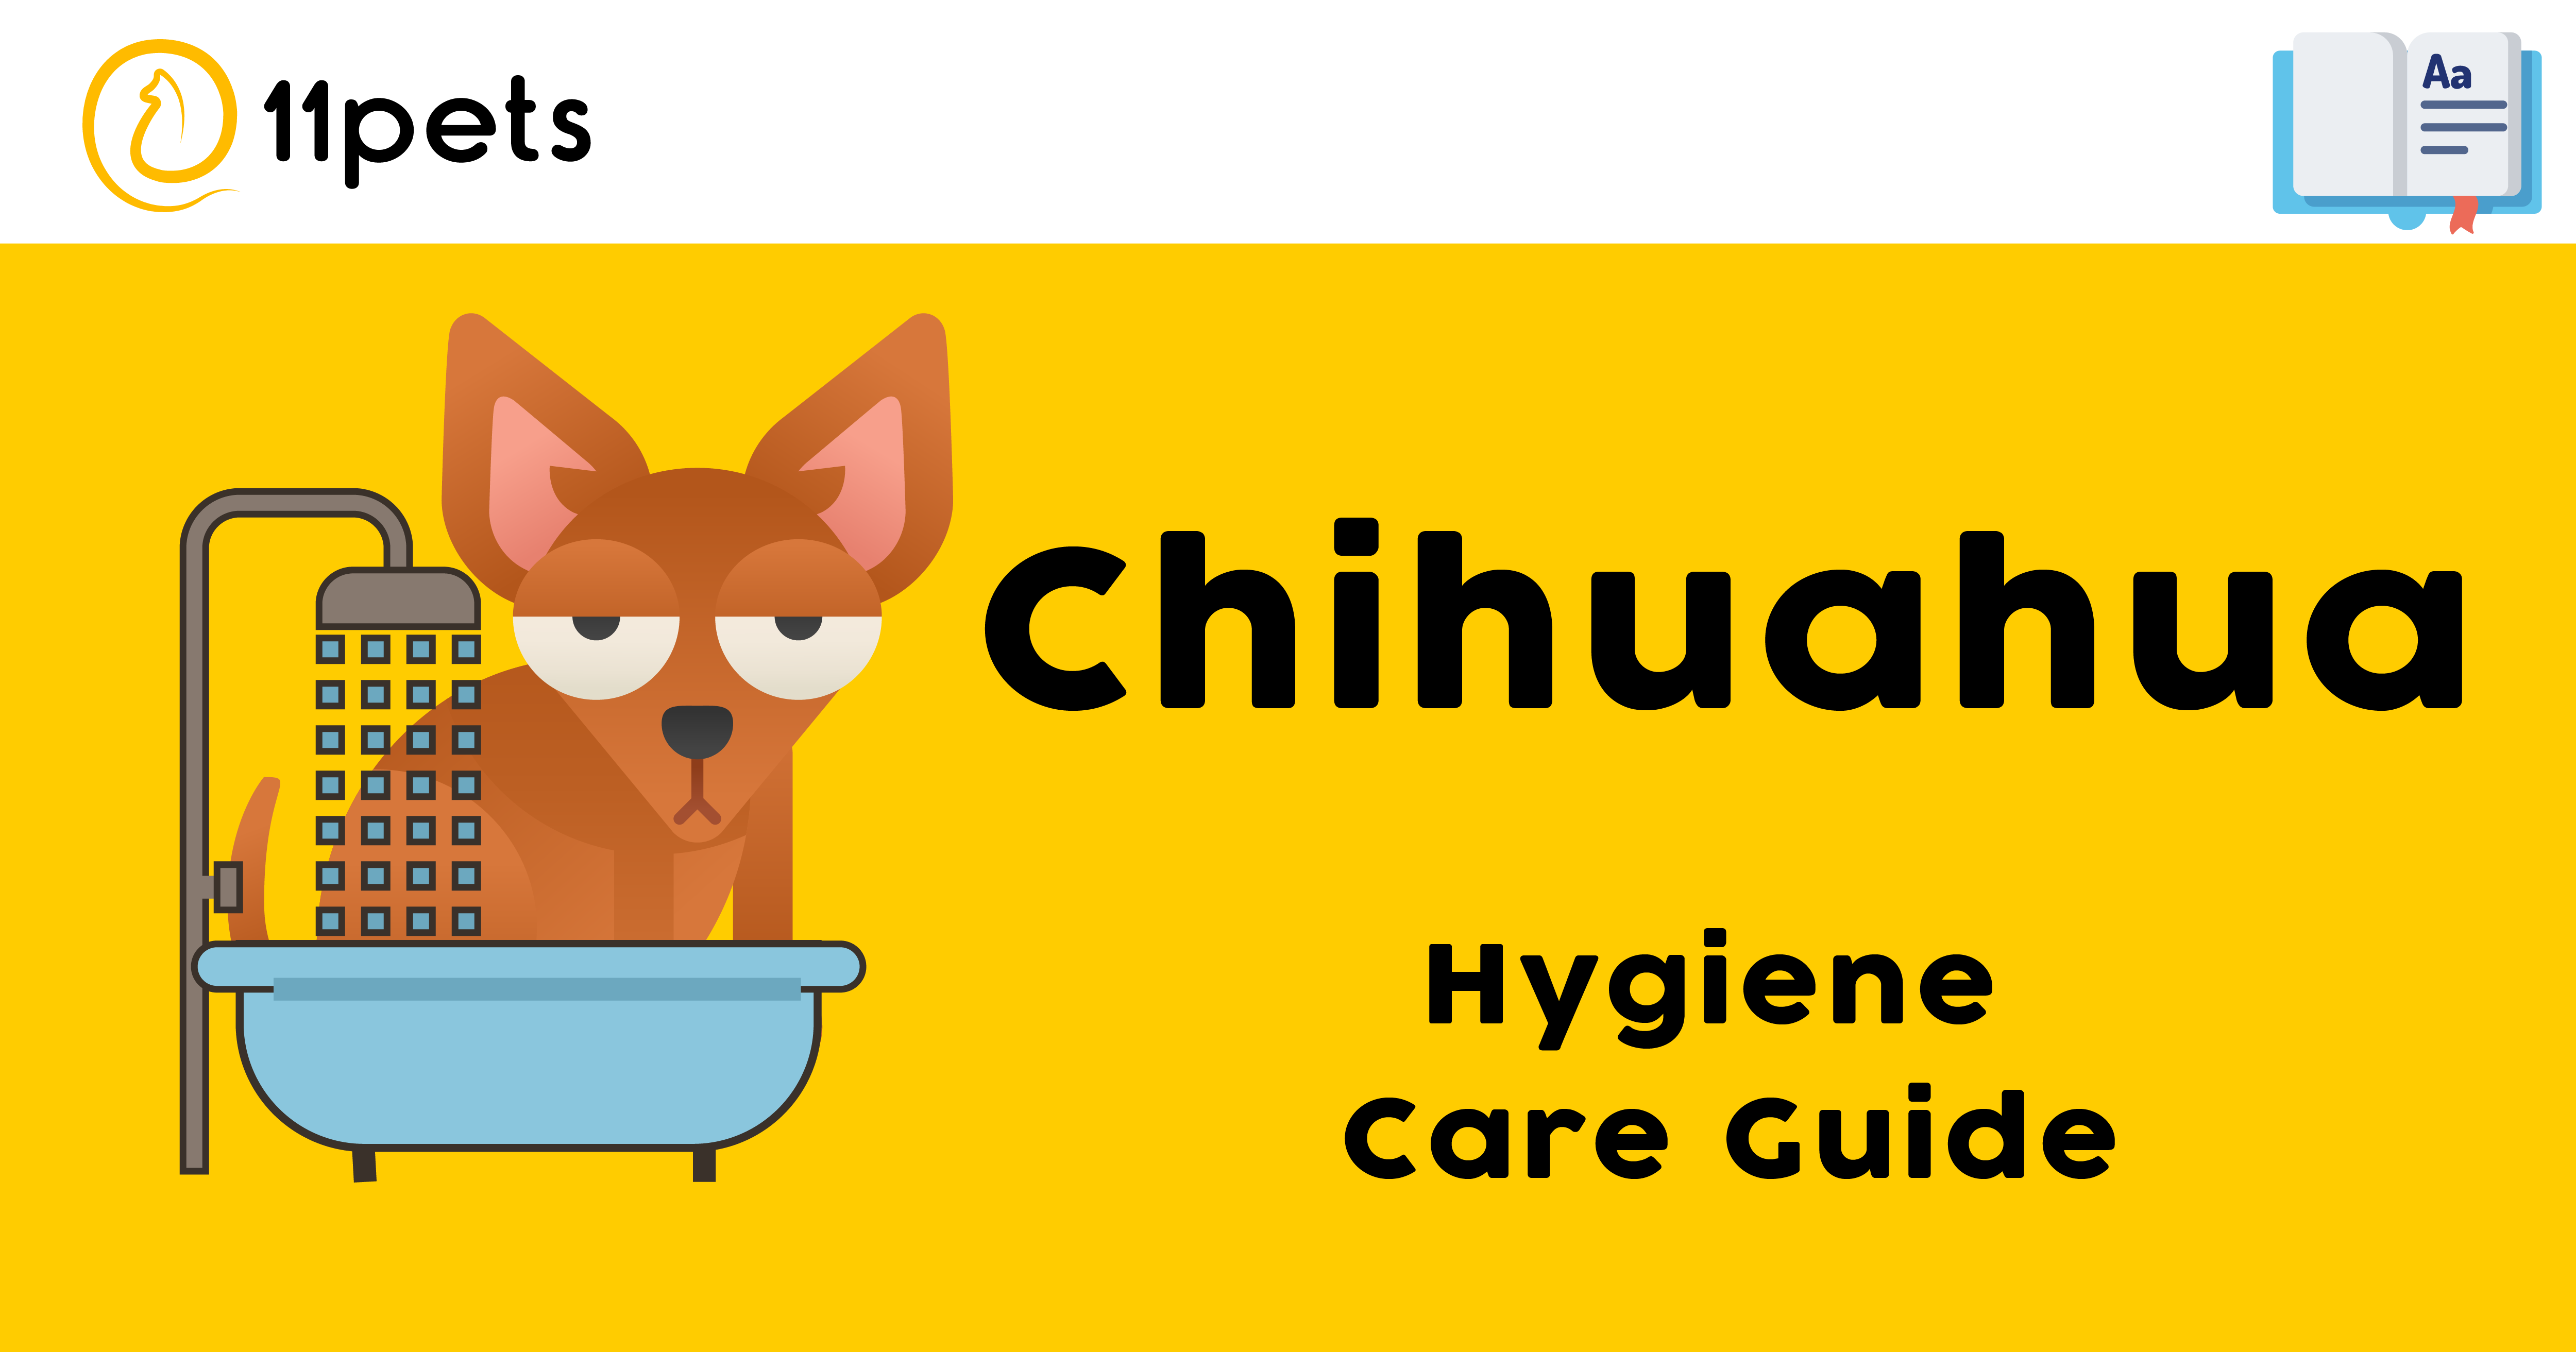 Hygiene Care Guide for Chihuahuas